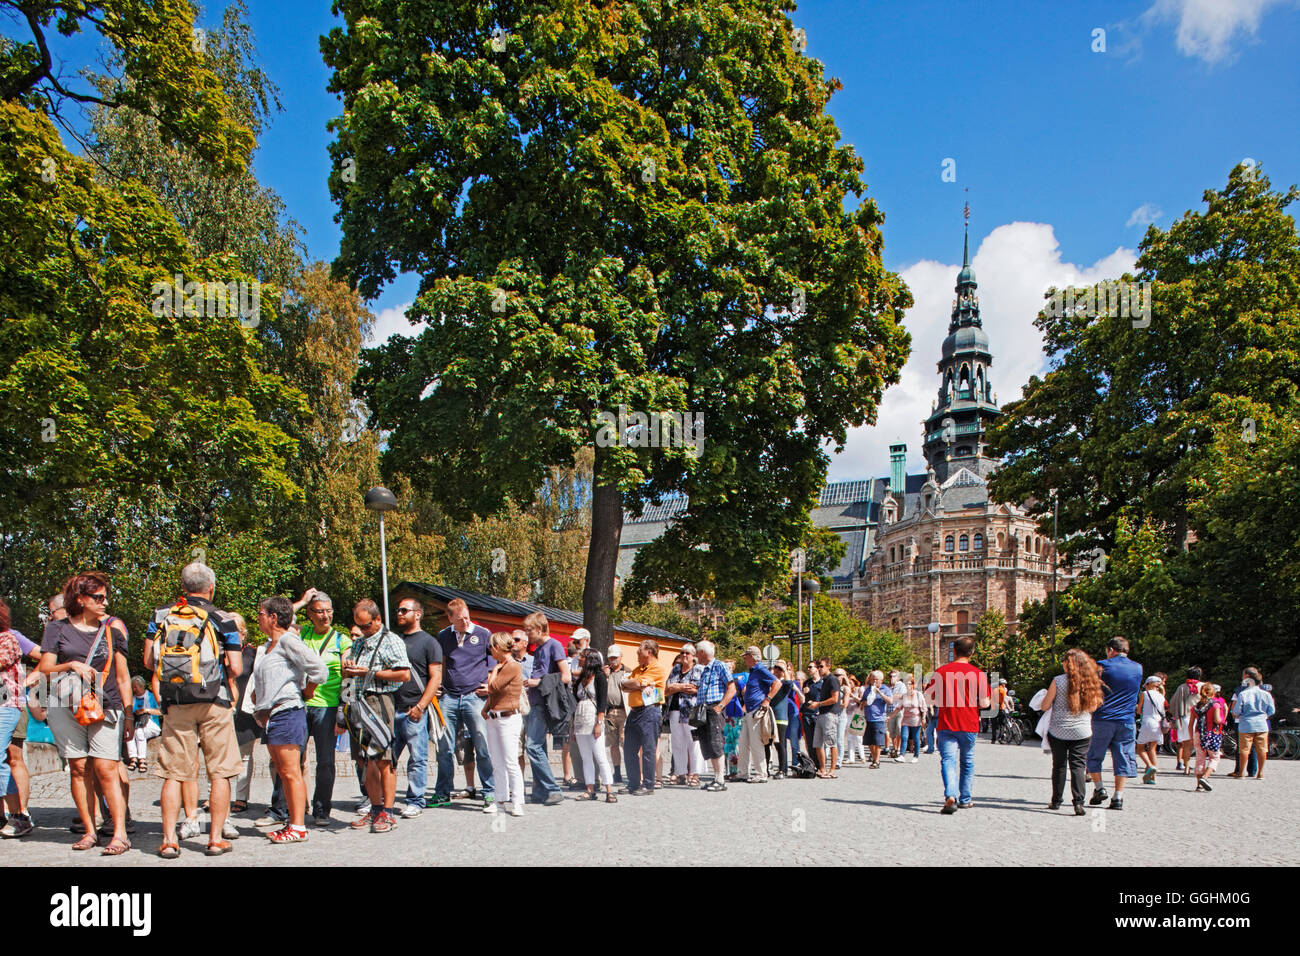 Queue at the entrance of Wasa Museum, in the background Nordiska Museum, Stockholm, Sweden - Stock Image